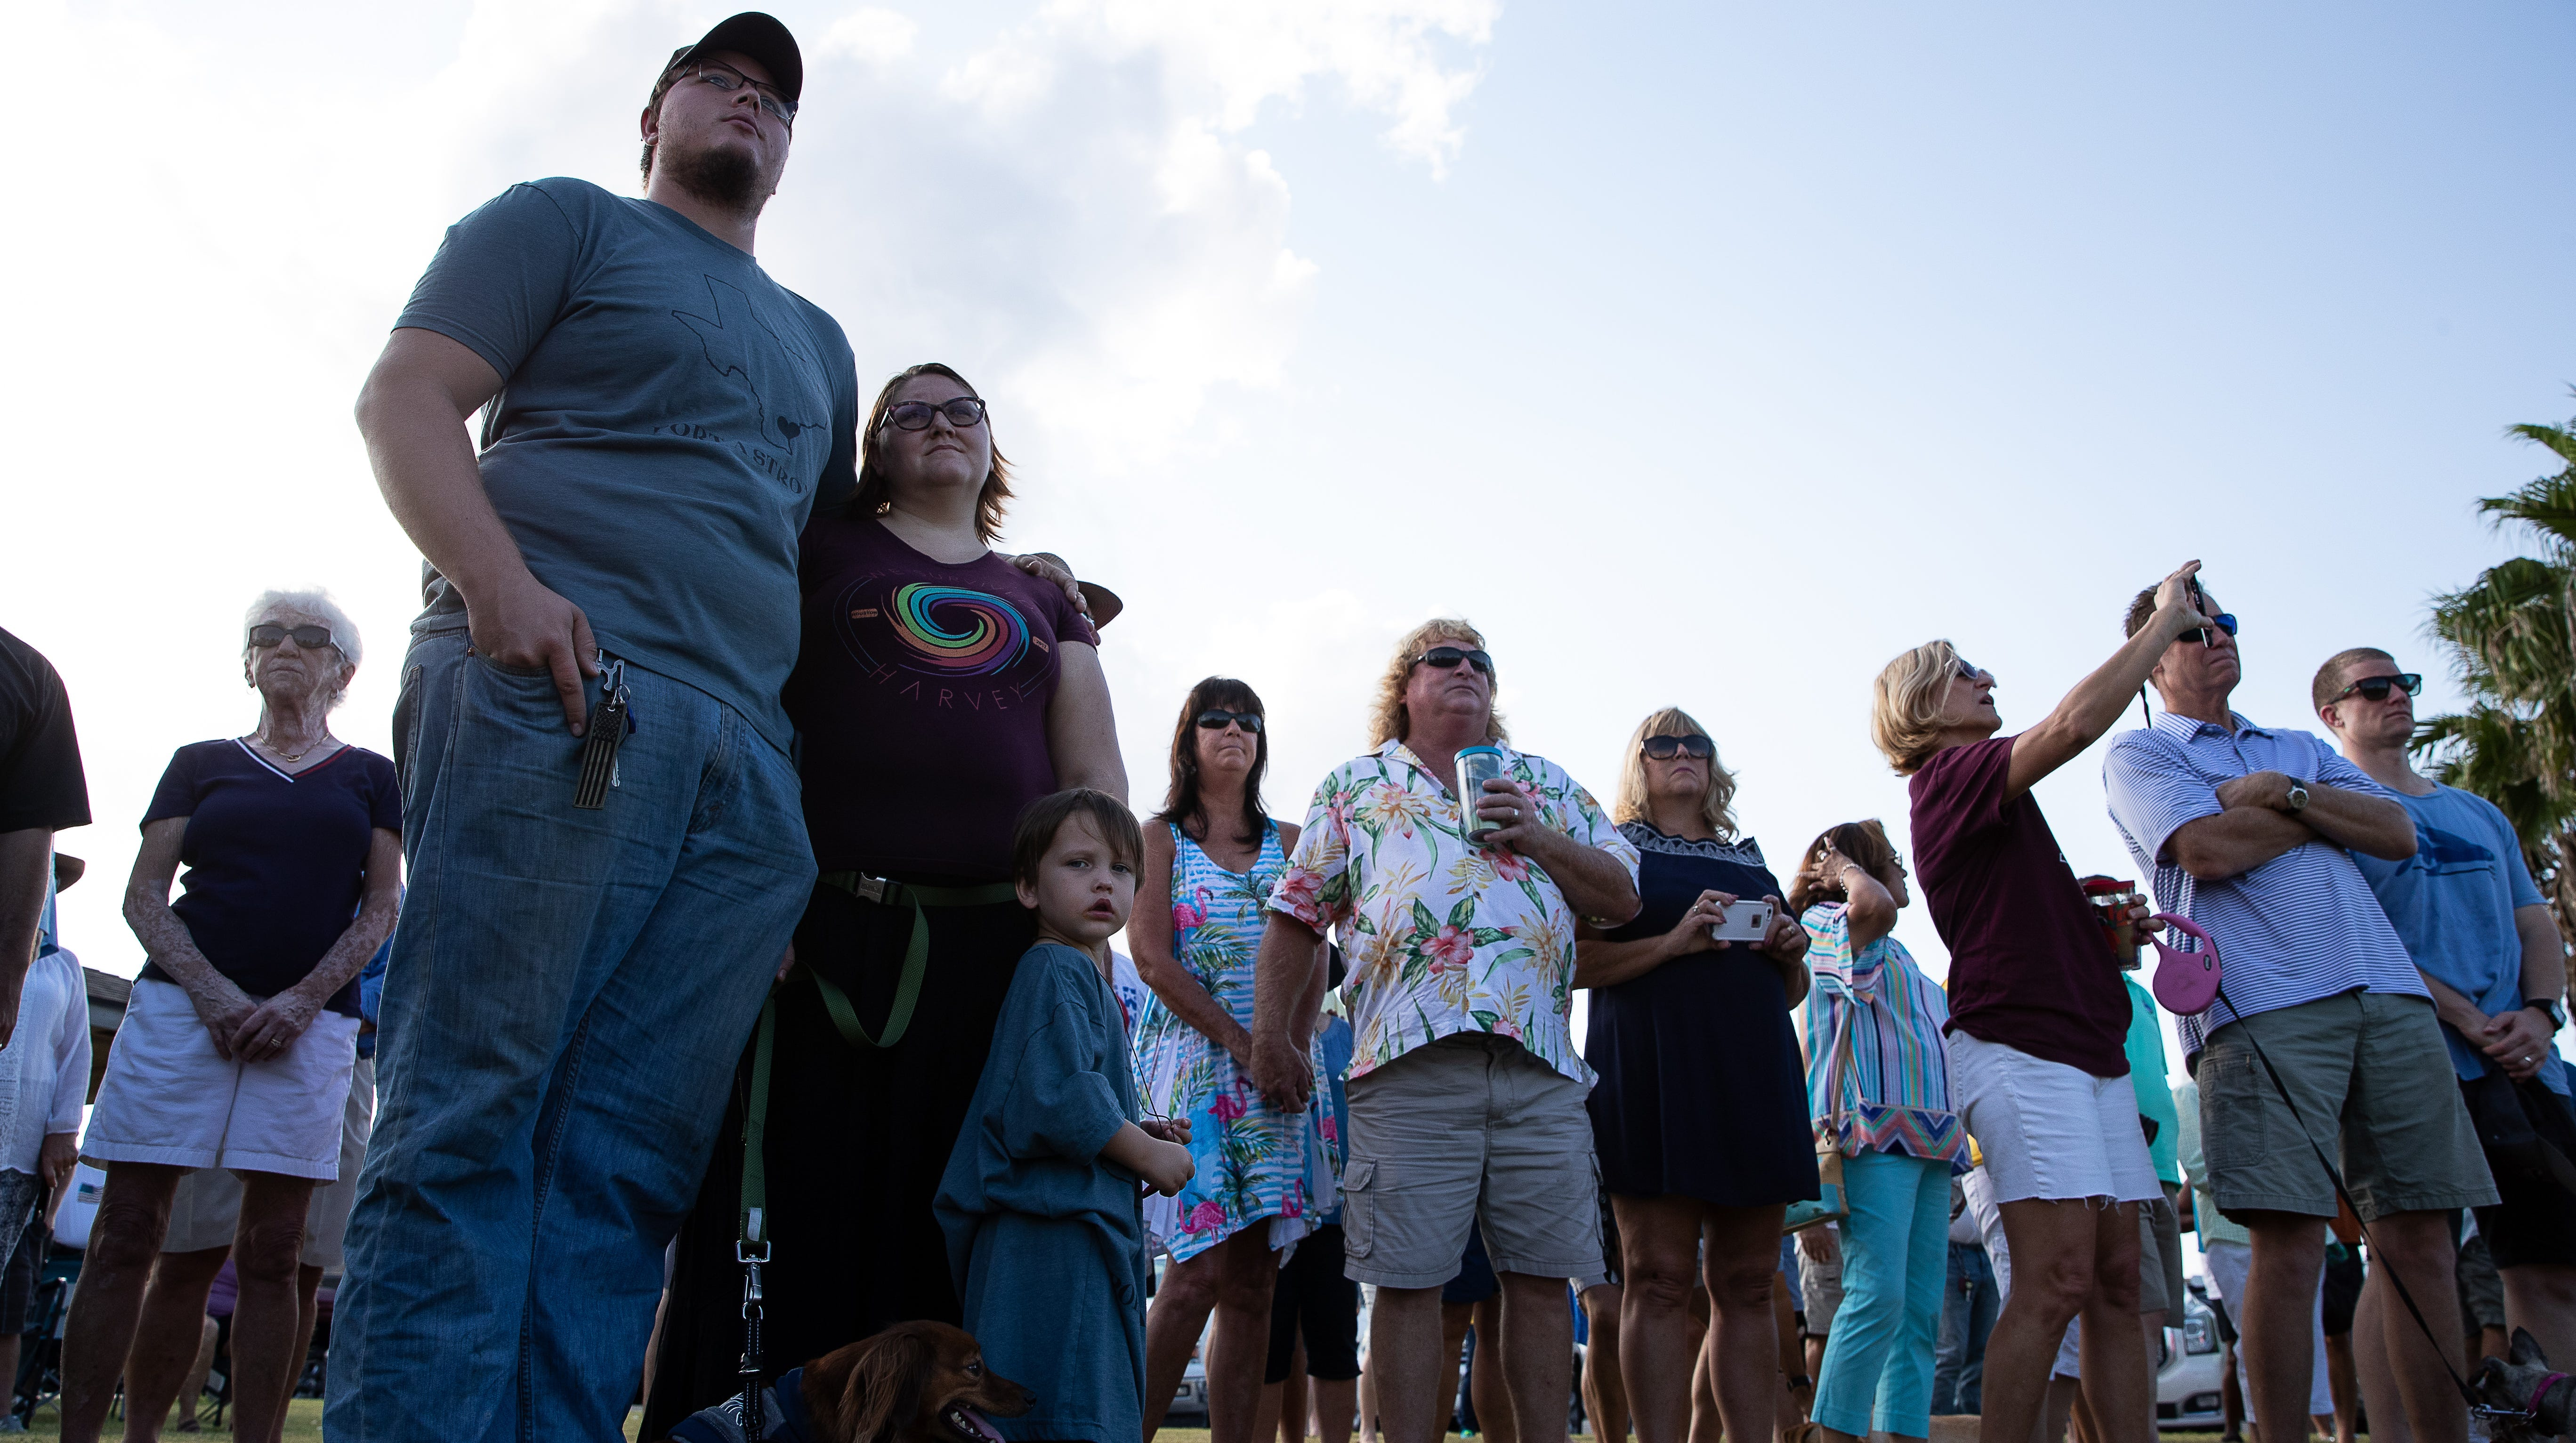 Residents of Port Aransas attend a ceremony in Roberts Point Park honoring first responders and the community on the first anniversary of Hurricane Harvey on Saturday Aug. 25, 2018.